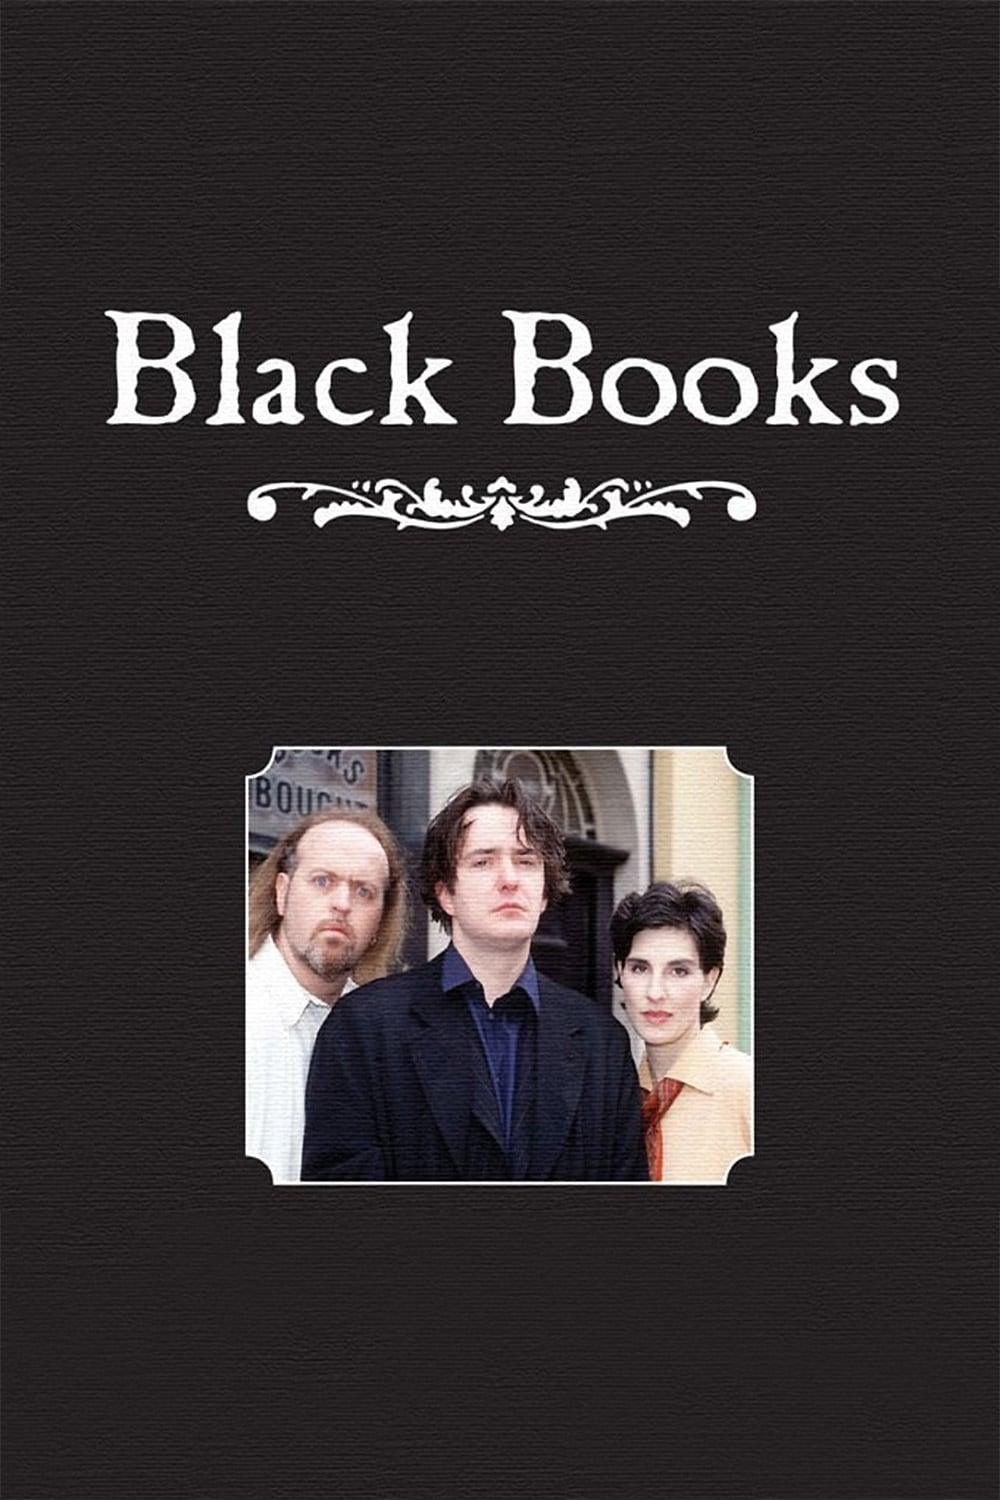 Black Books (2000)